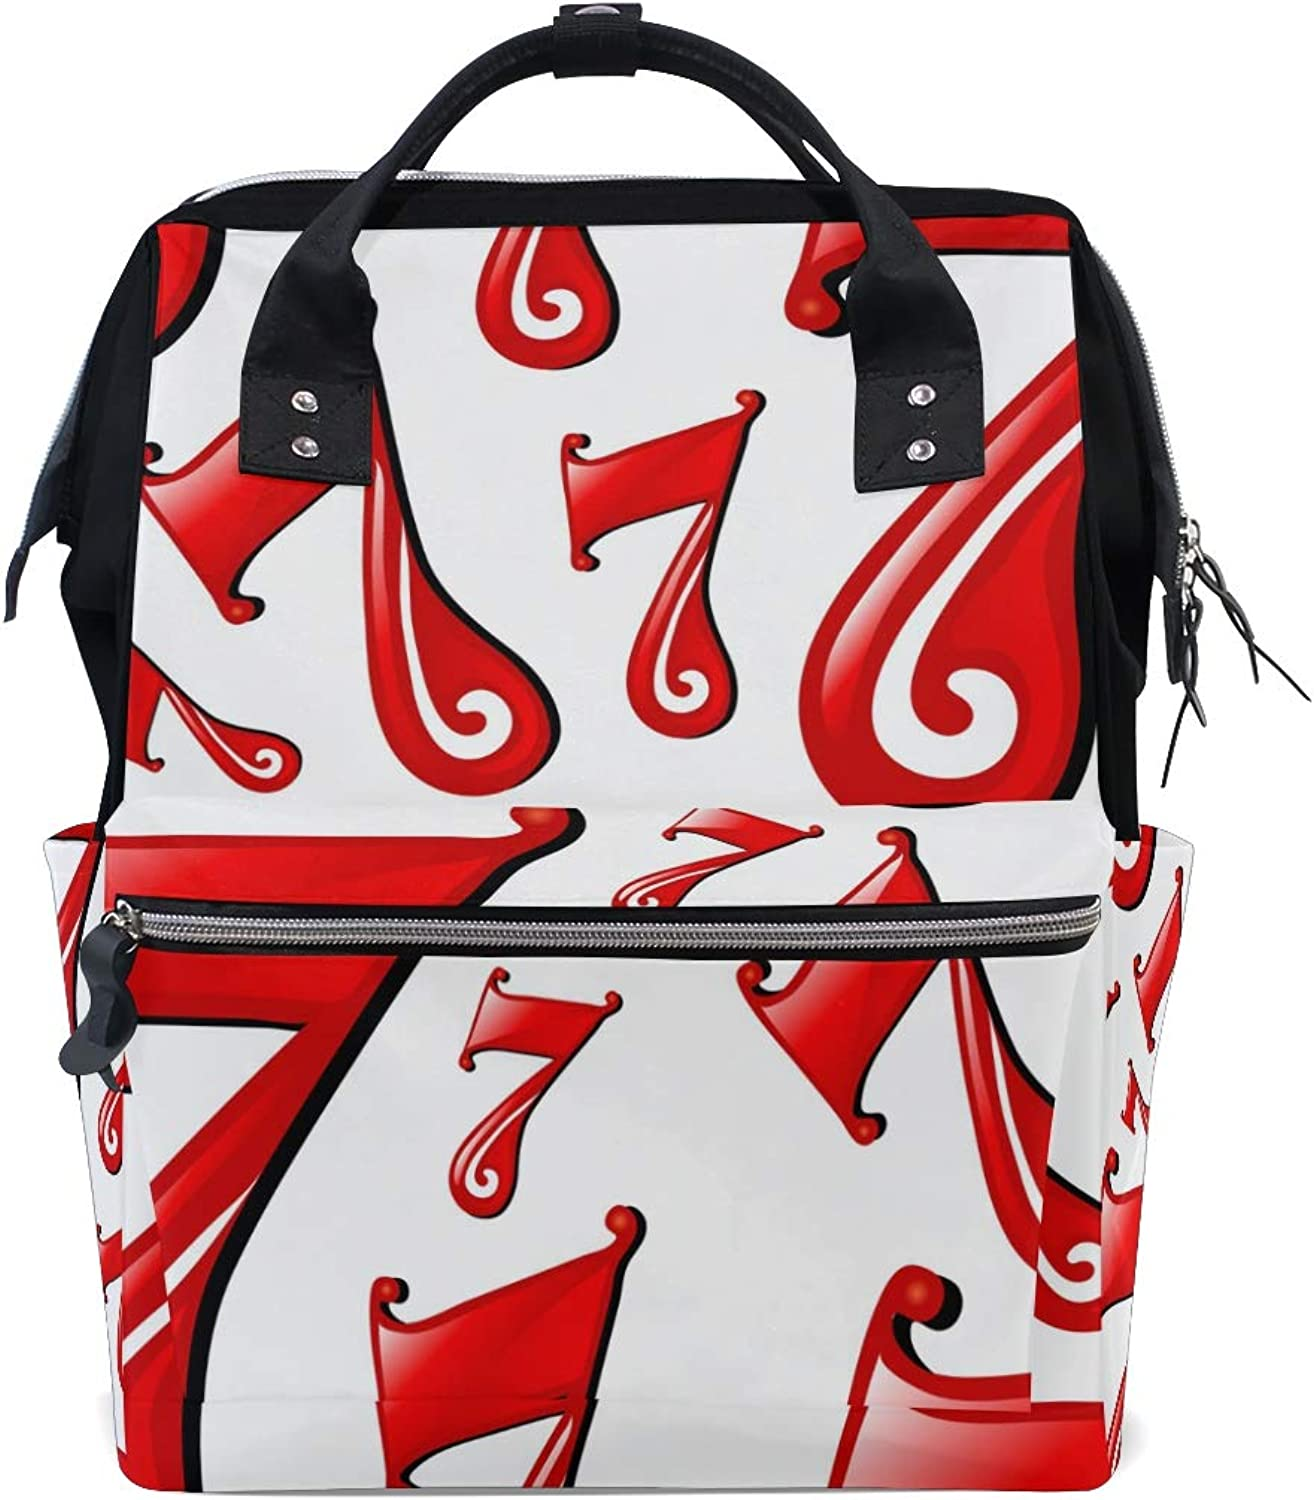 FAJRO Red Number SevenTravel Backpack Canvas Handbag School Pack